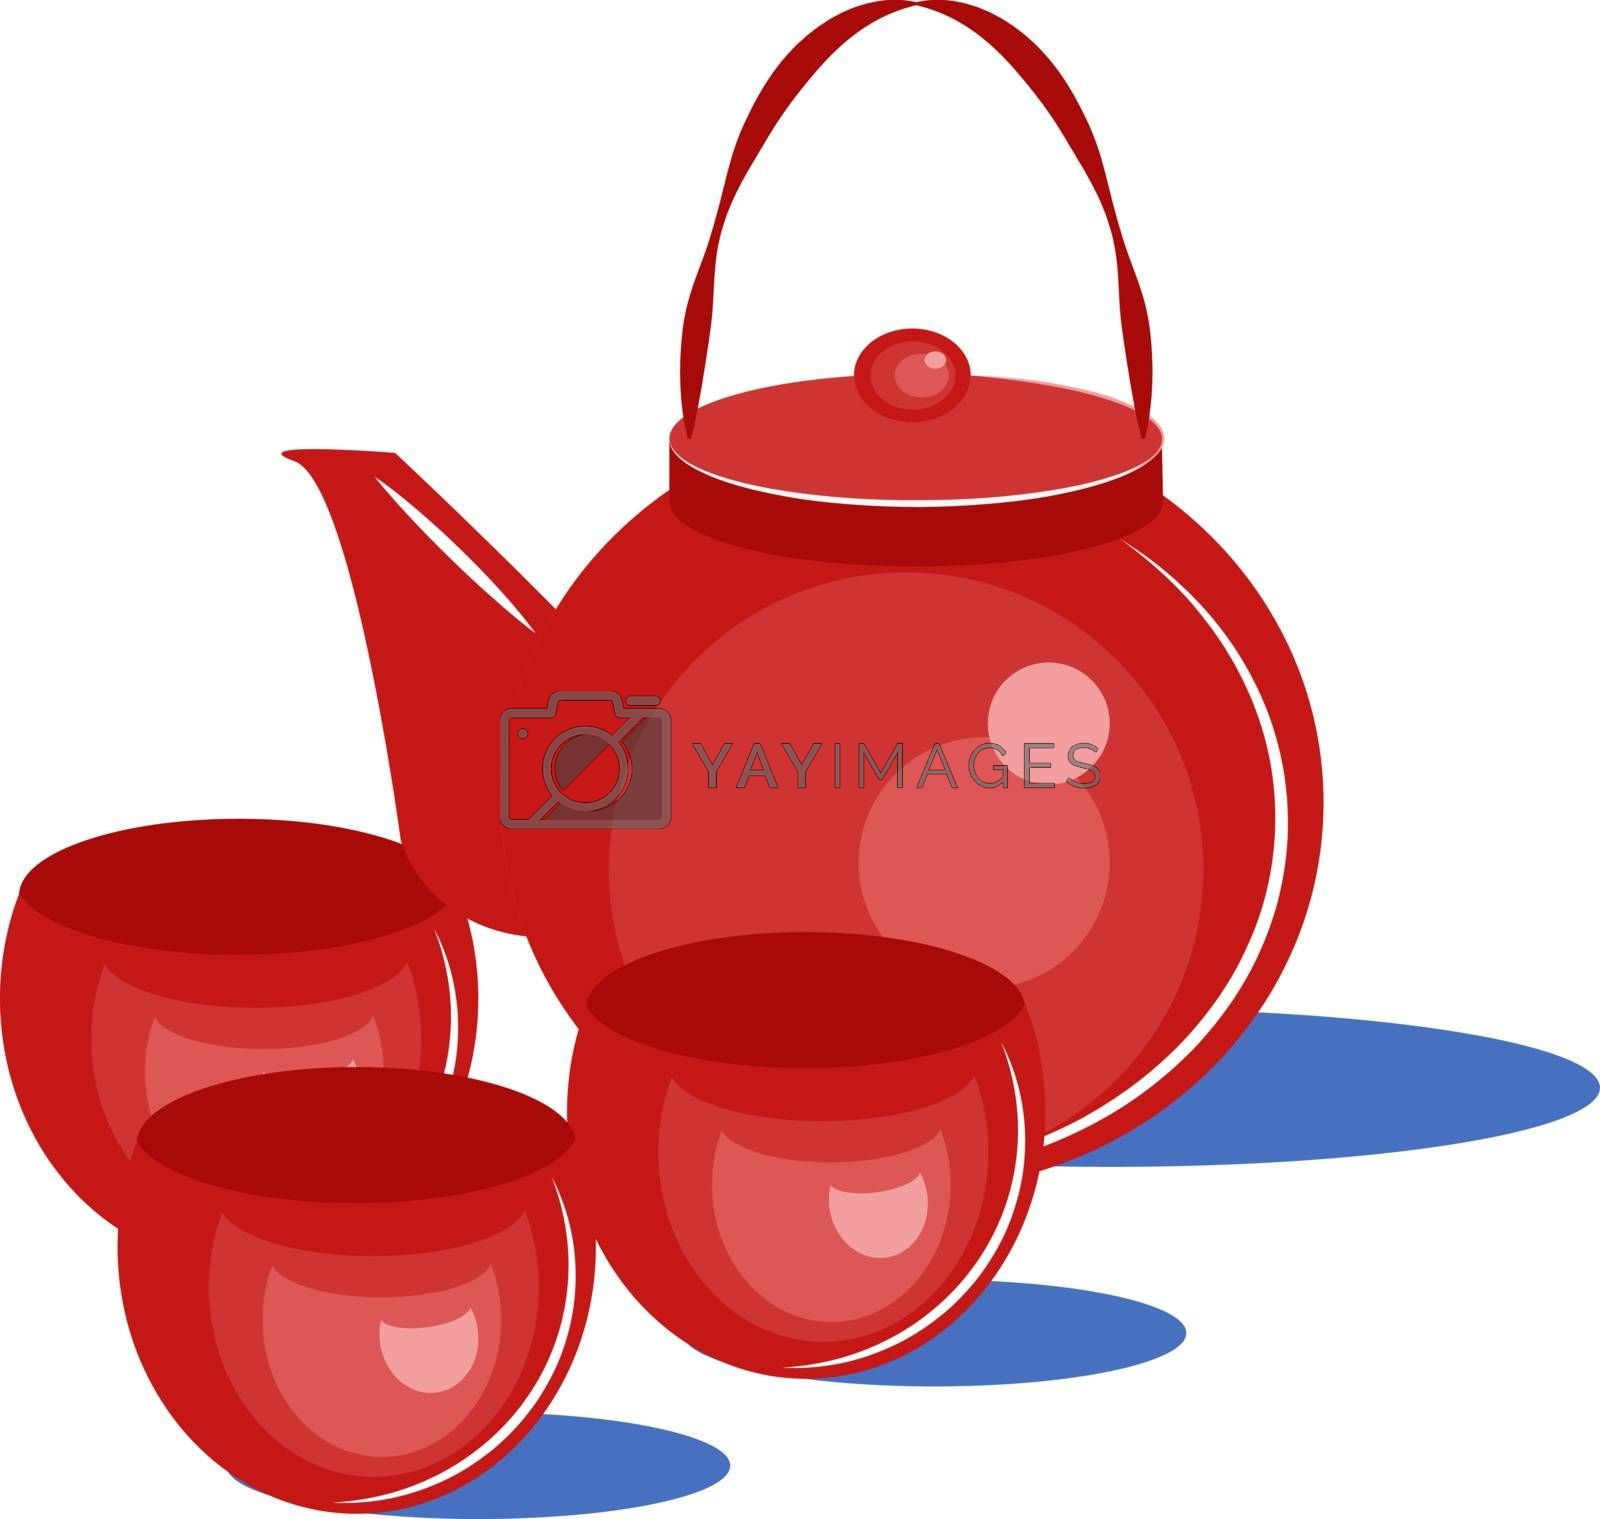 Red kettle, illustration, vector on white background.